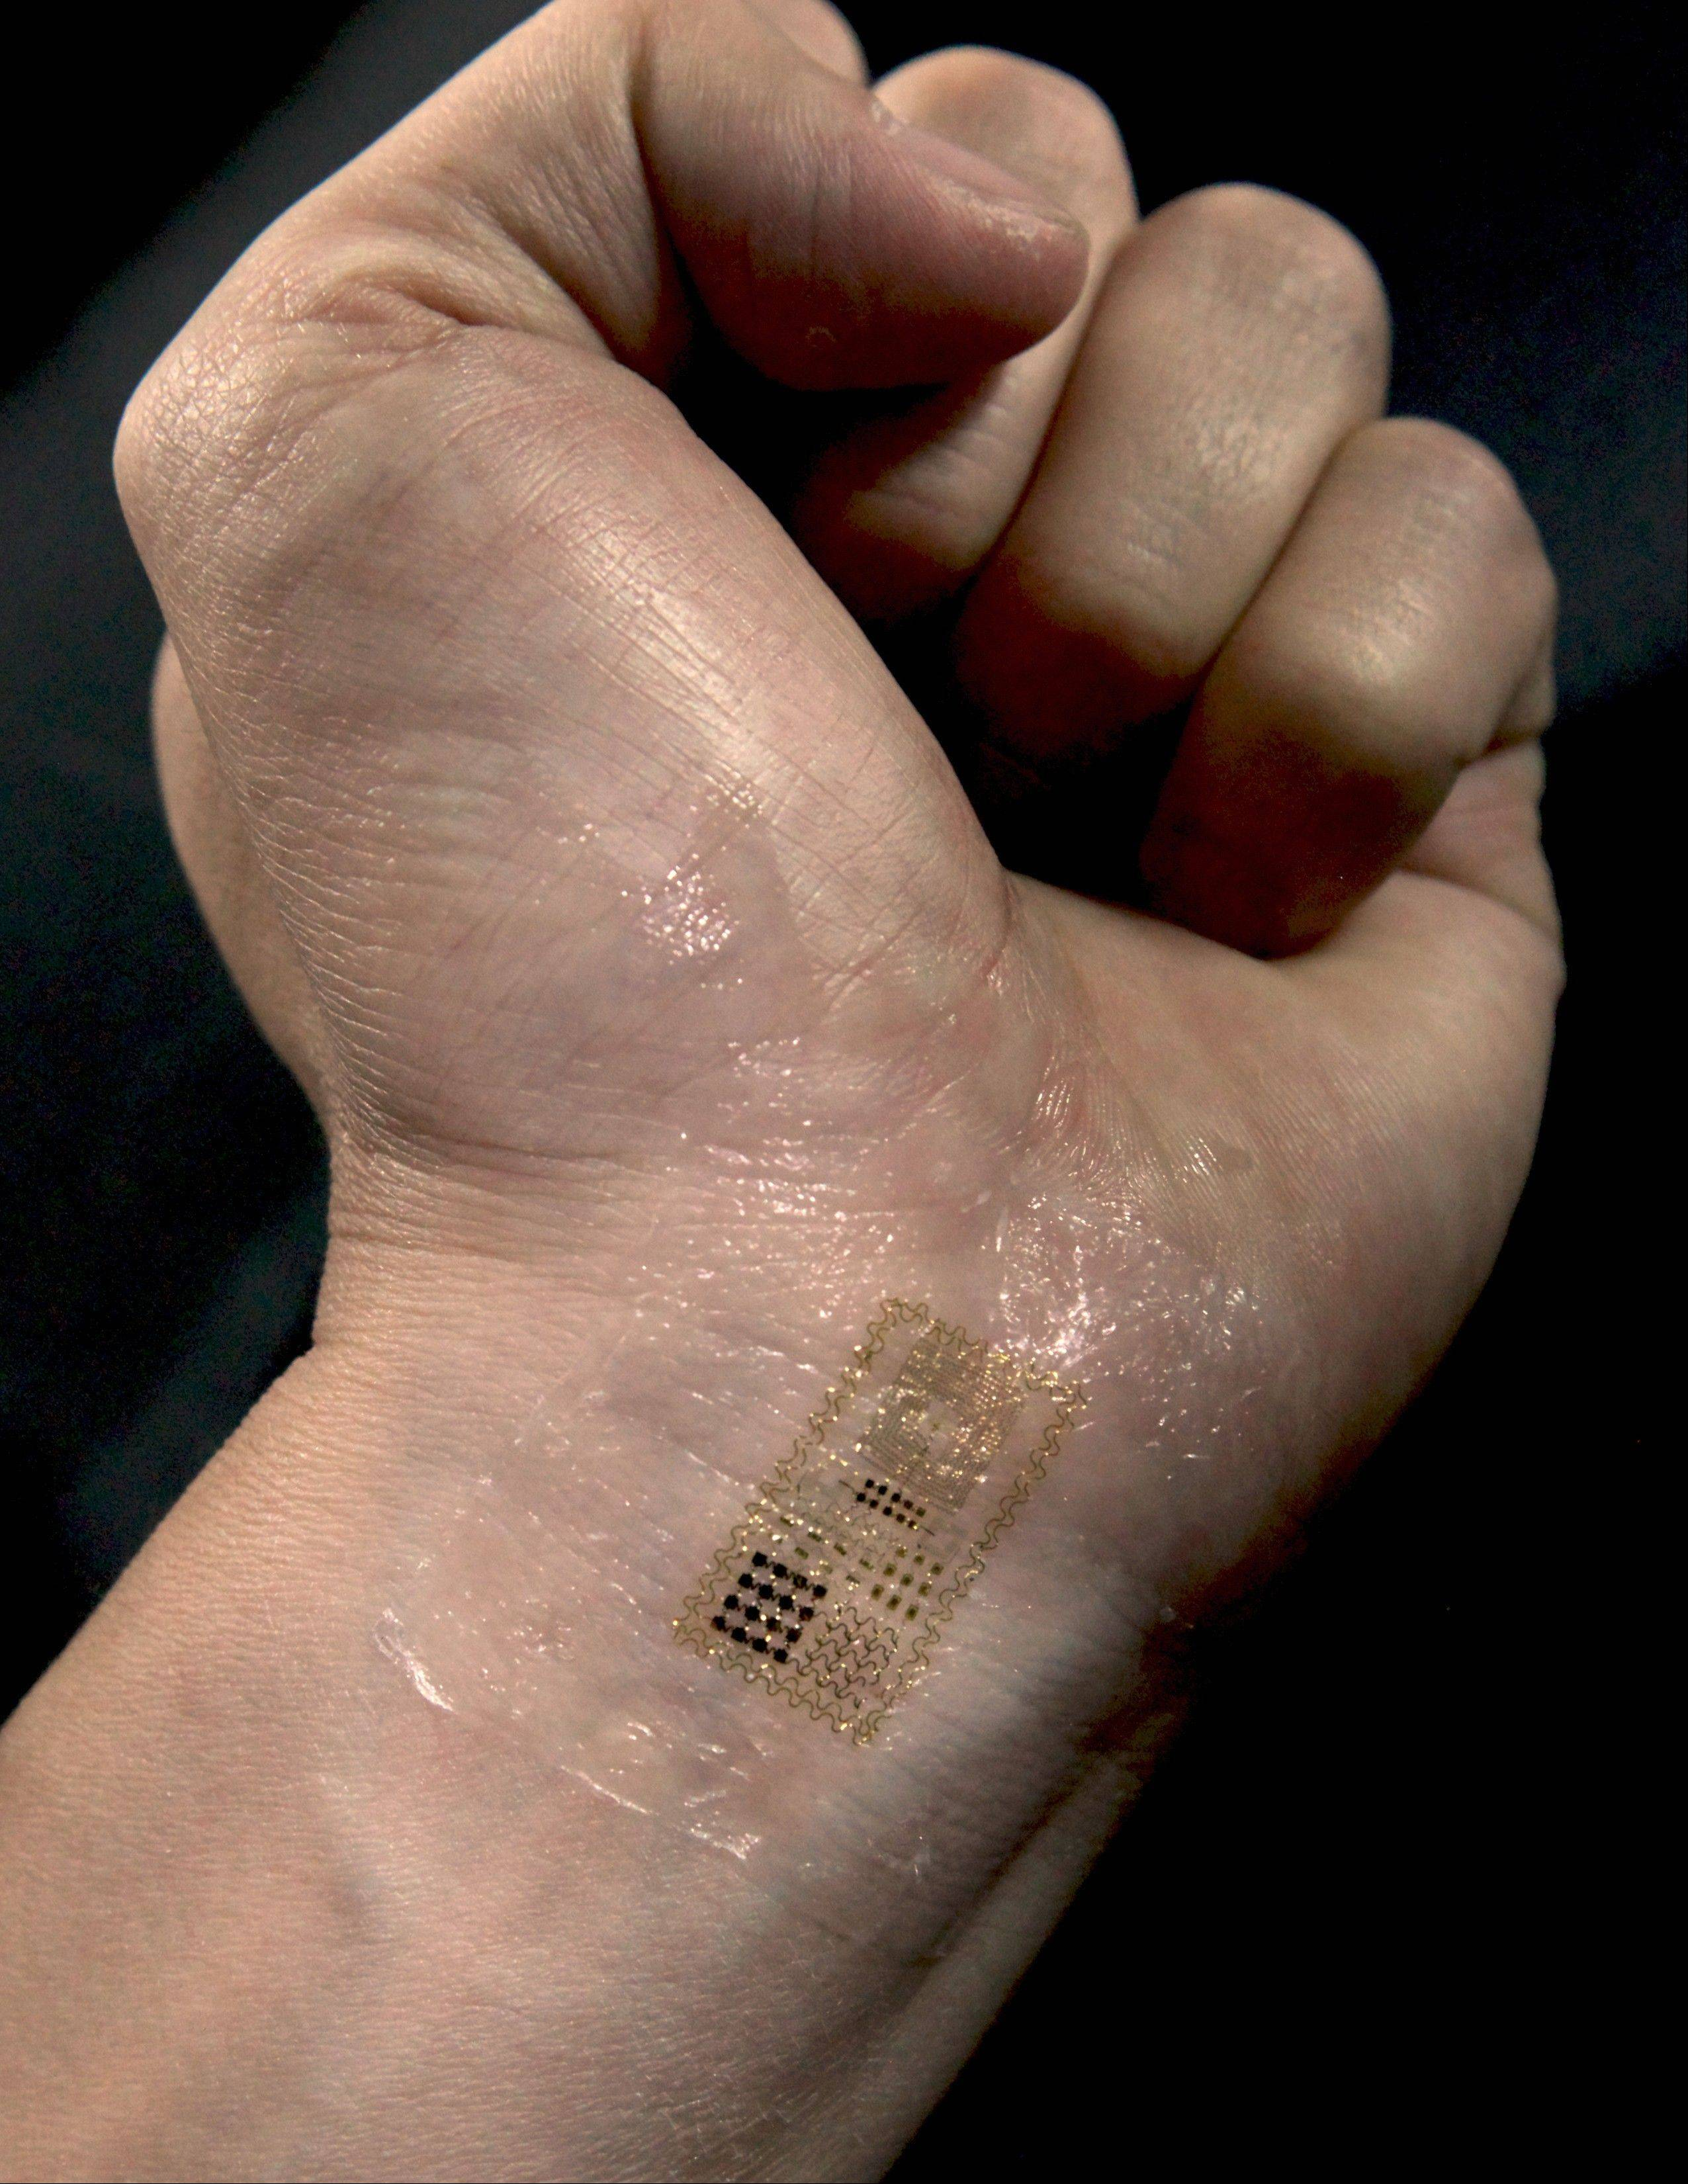 The University of Illinois and Northwestern University researchers published information in 2011 about developing an e-tattoo that could be used for medical diagnostics, communications and human-to-machine interfaces. Motorola Mobility is now seeking a patent on an e-tattoo.